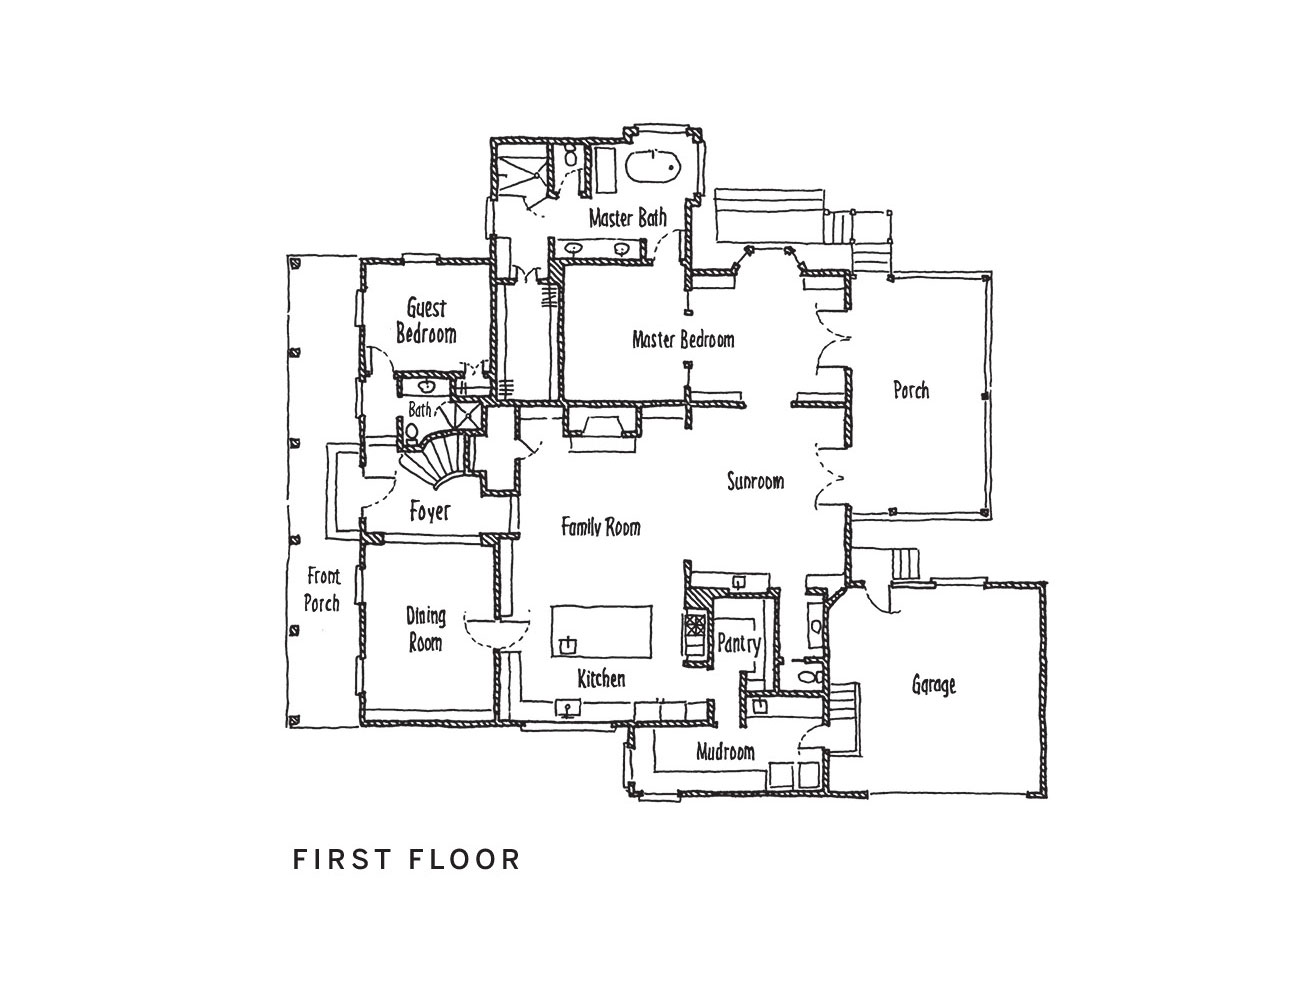 2018 Idea House First Floor Plan